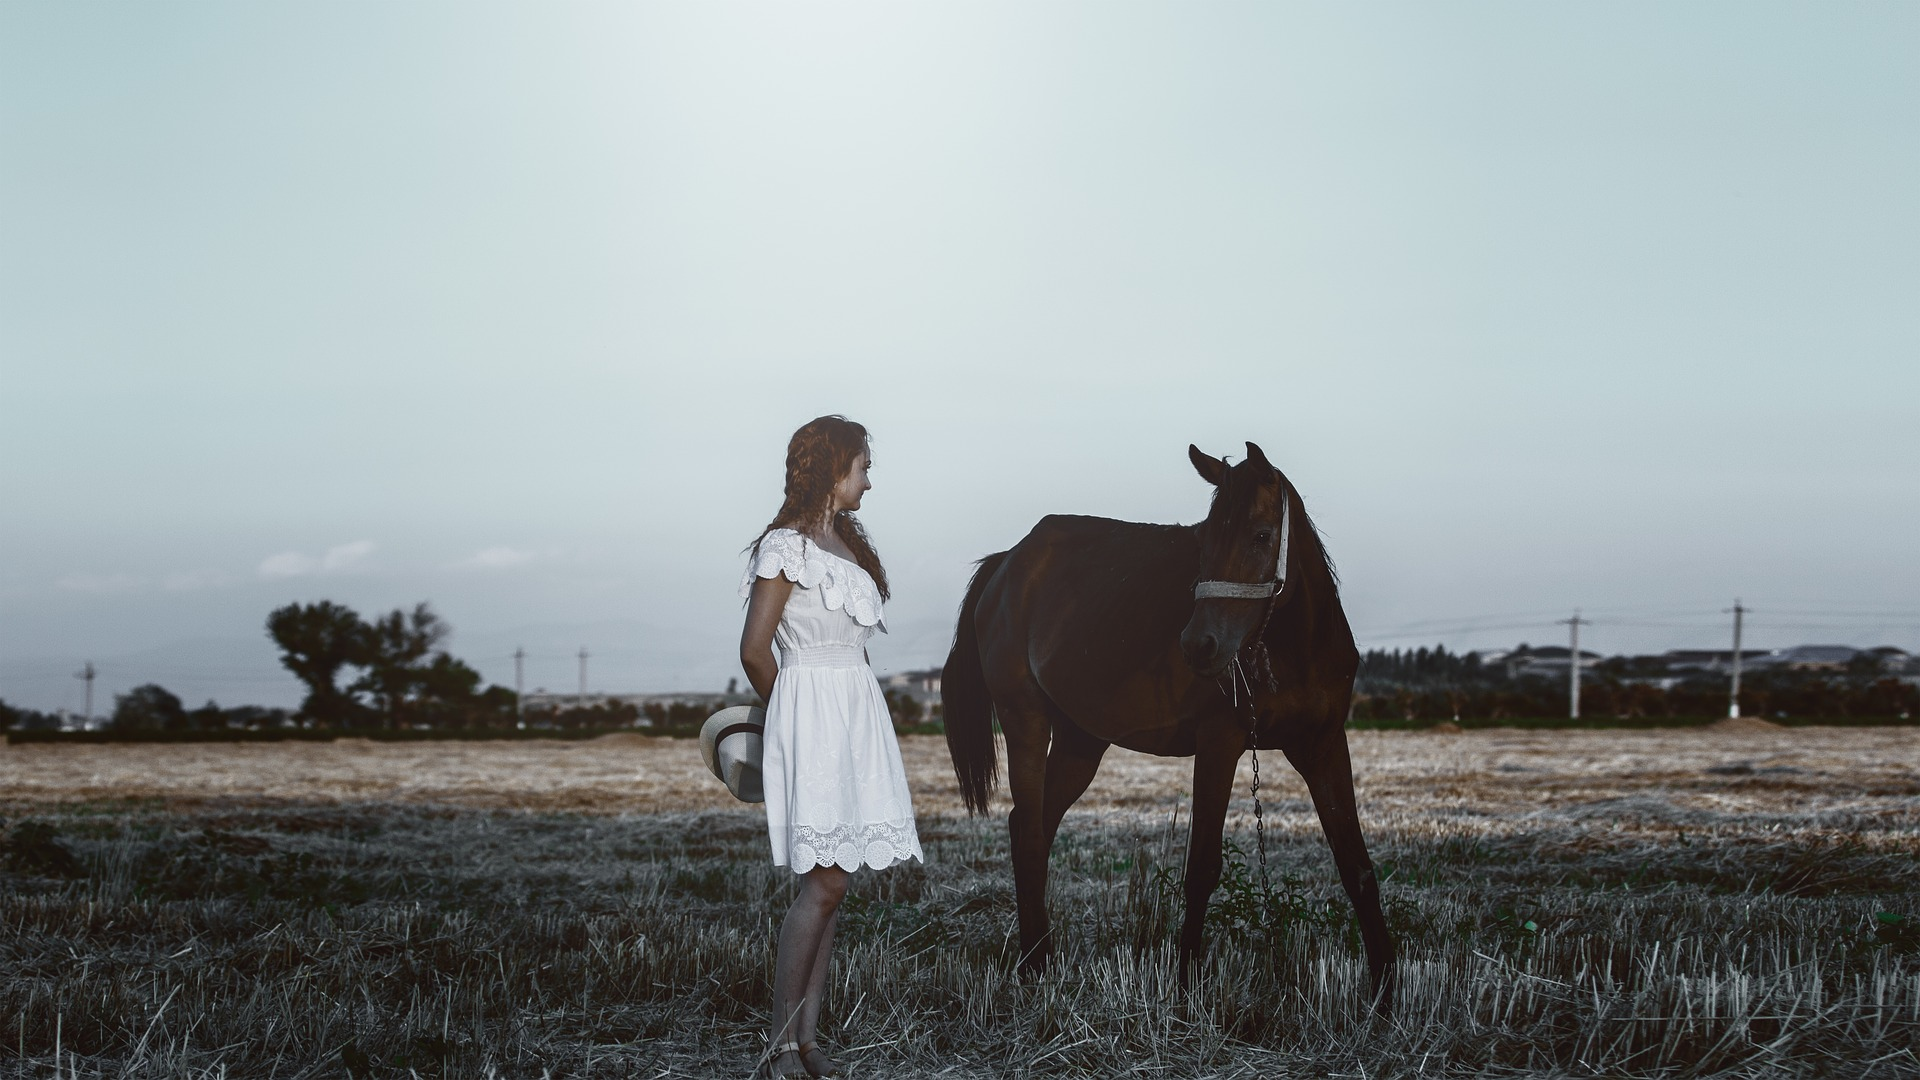 Photo Session with a Horse, Activity, Animal, Farm, Fashion, HQ Photo